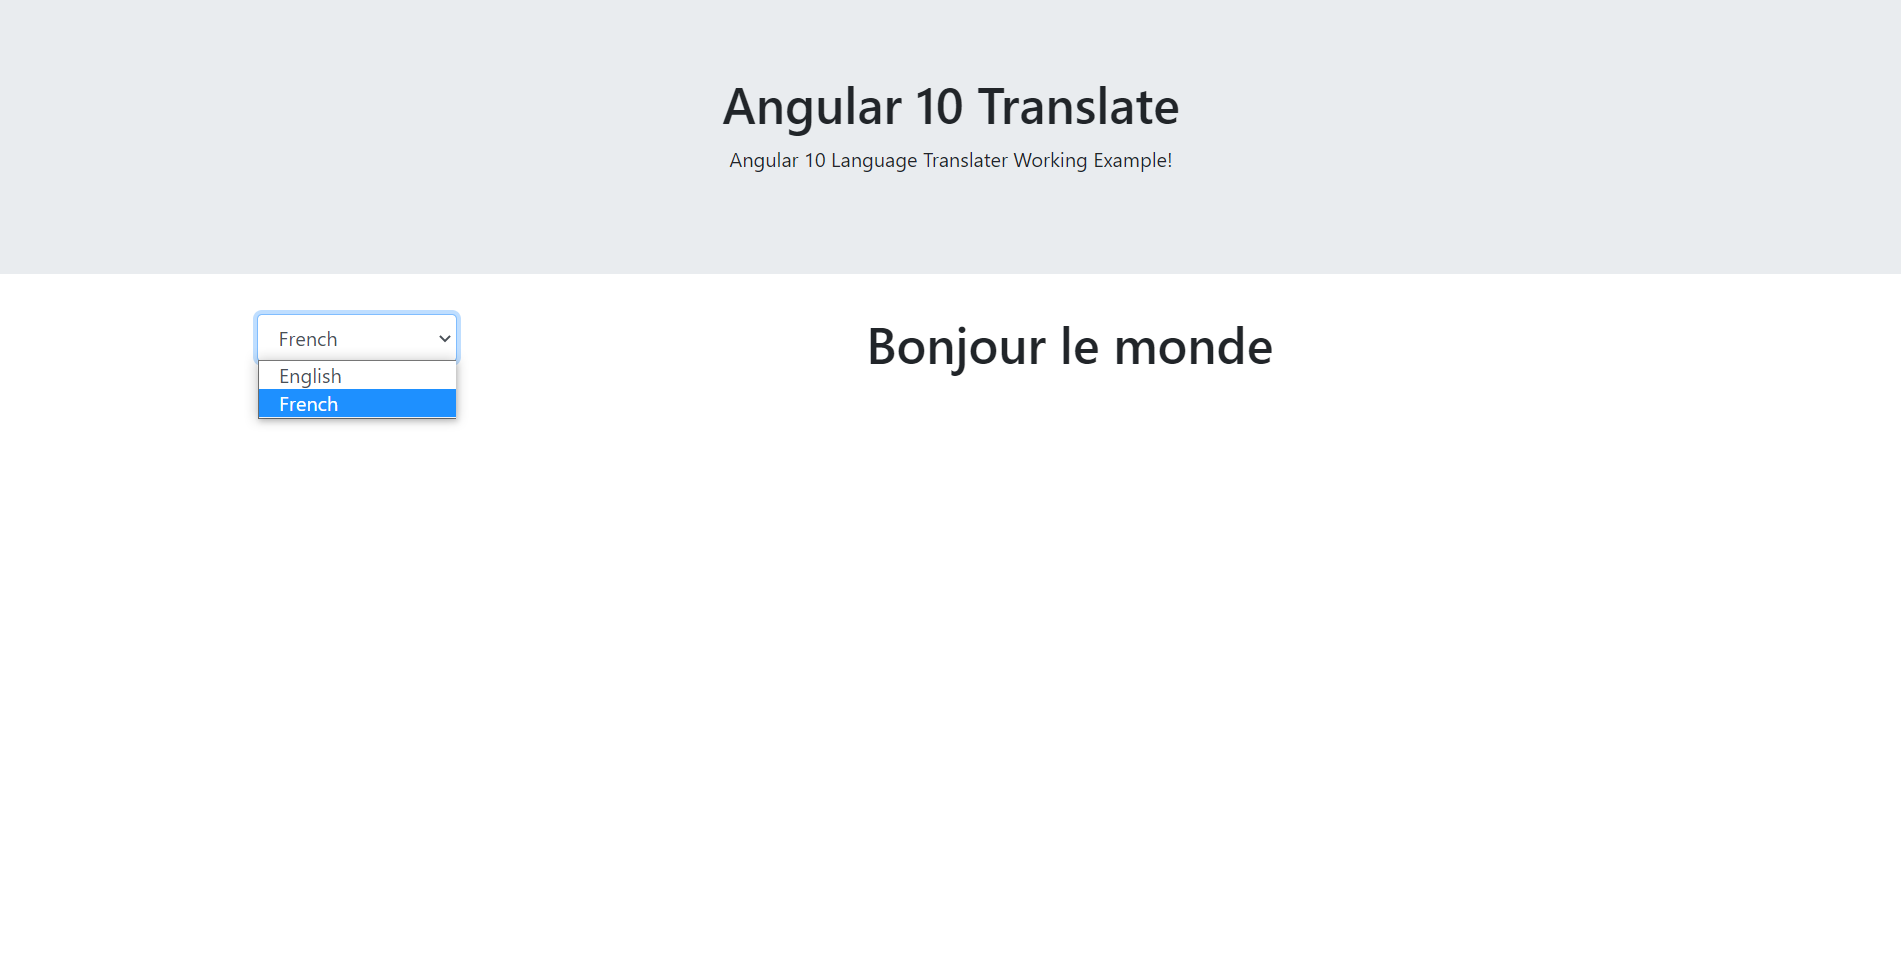 Angular 10 language translator working tutorial